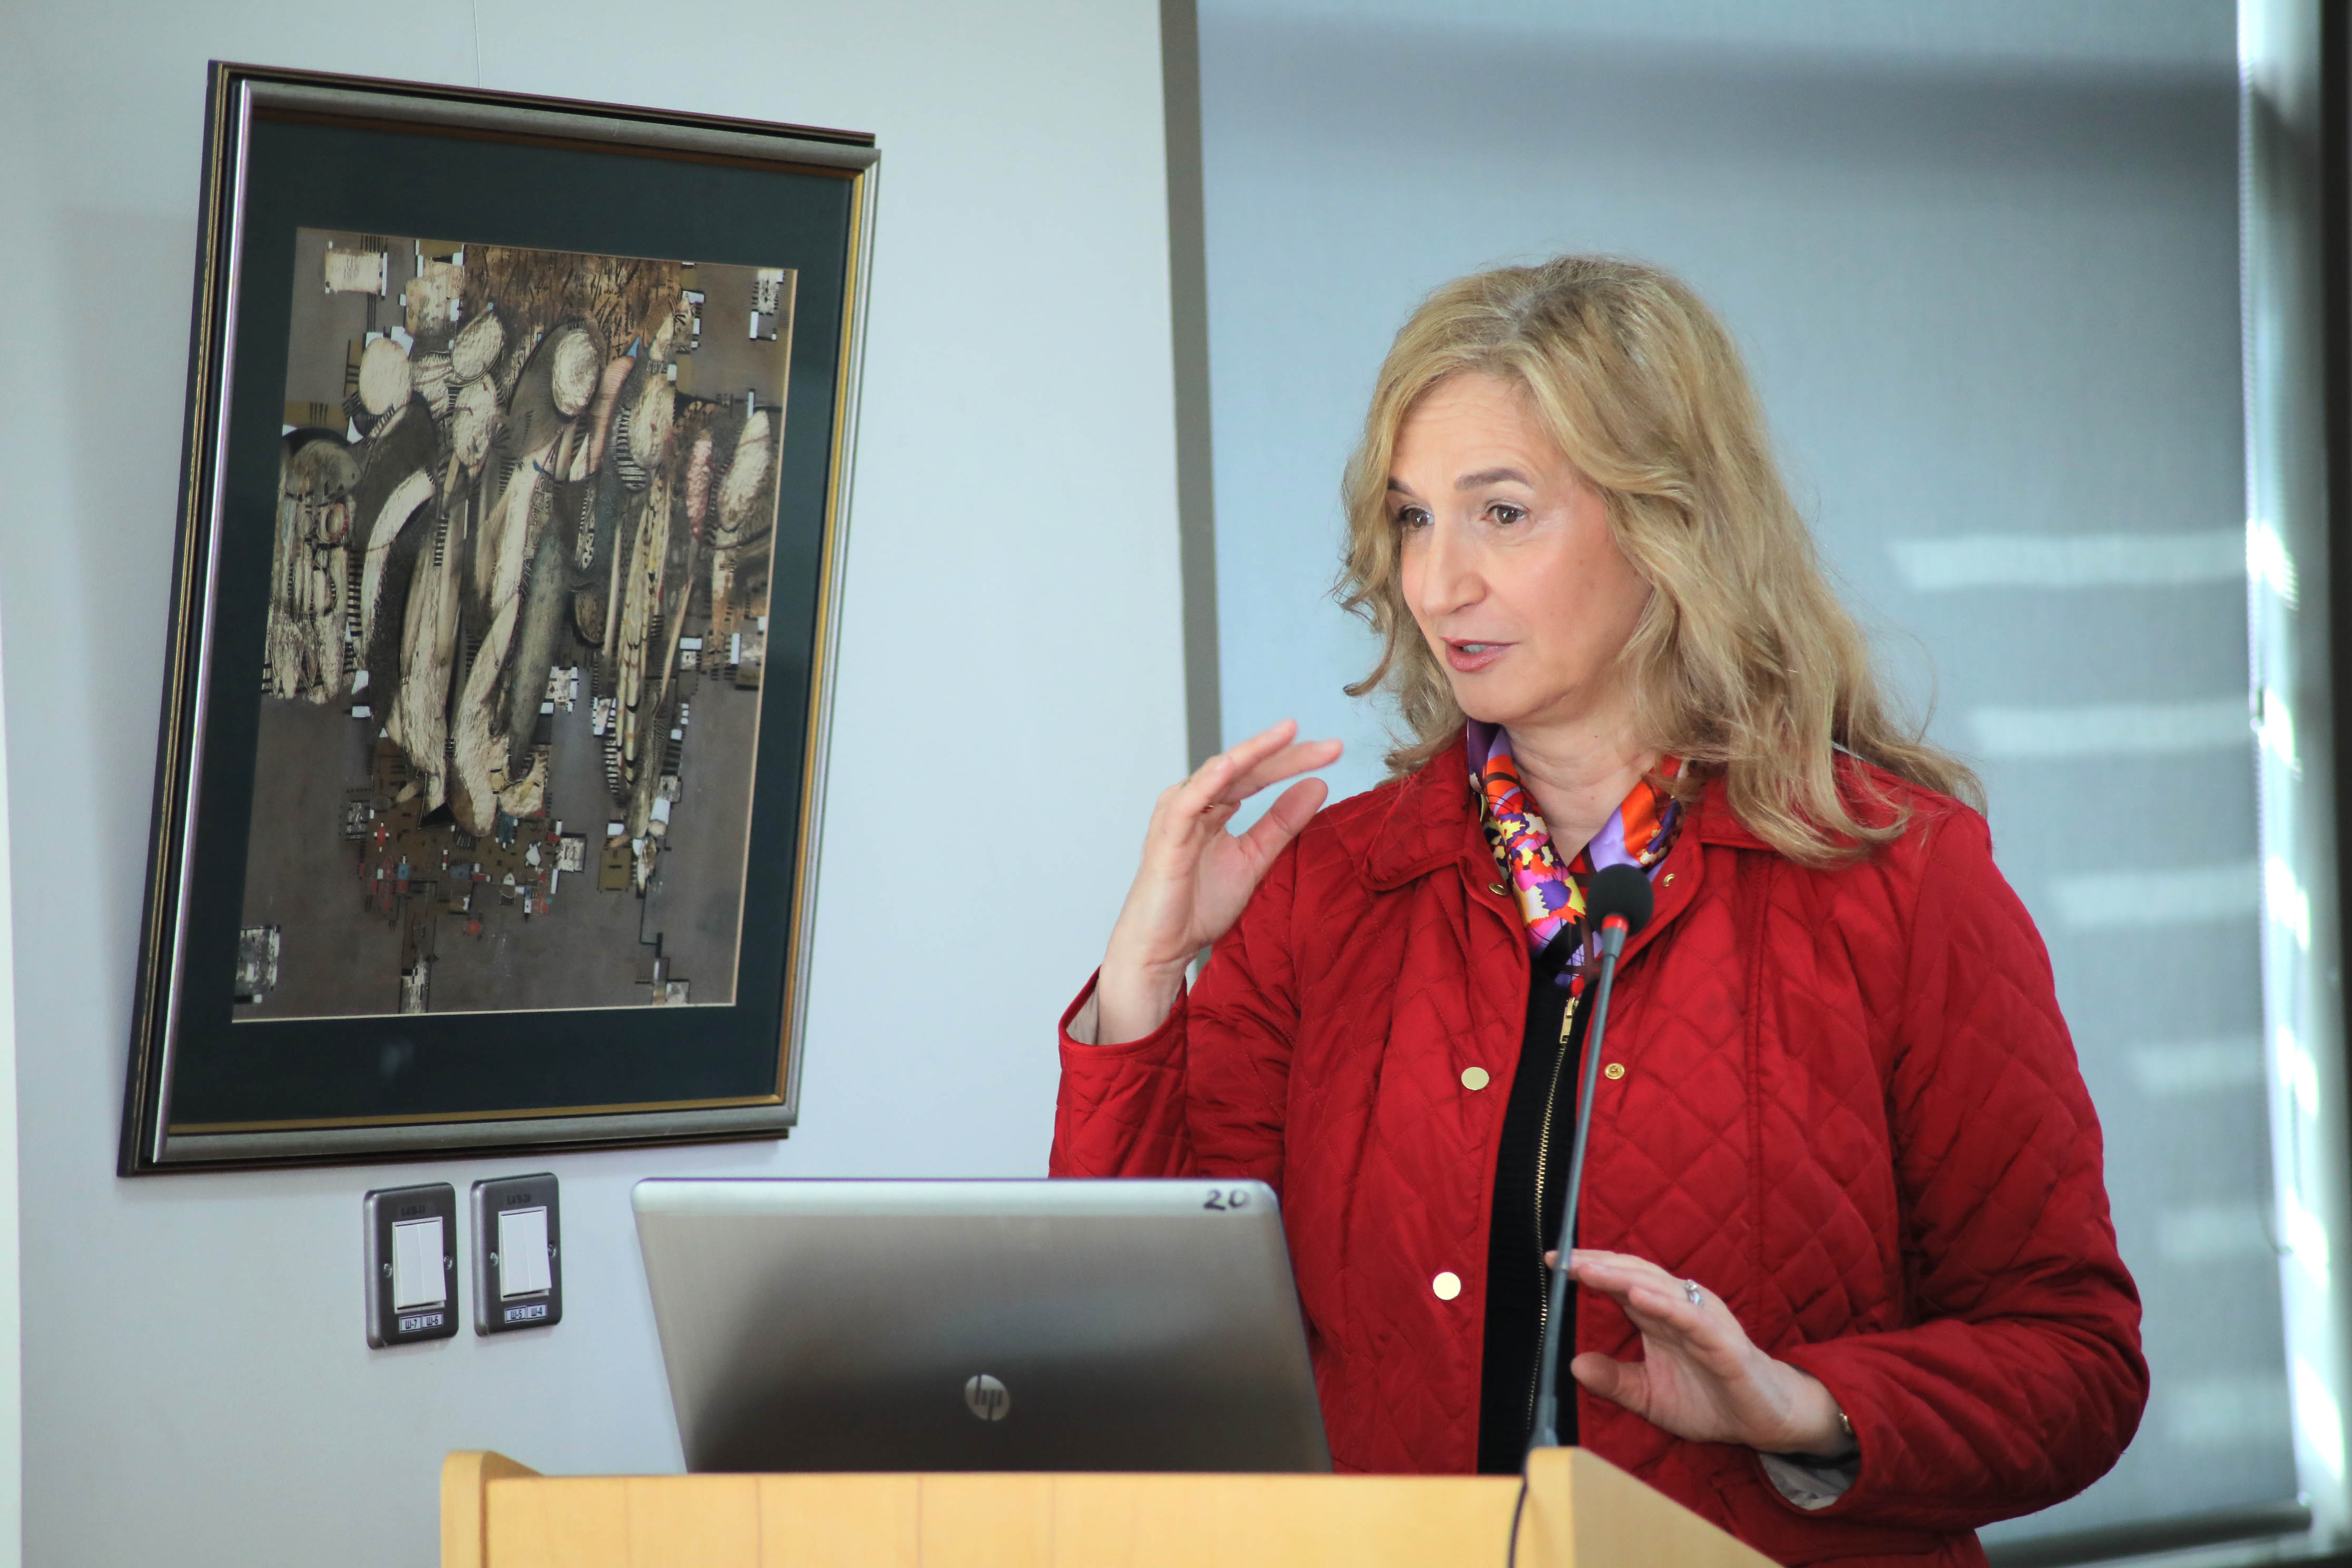 Professor Melita Kovacevic from the University of Zagreb Lectures on Doctoral Studies